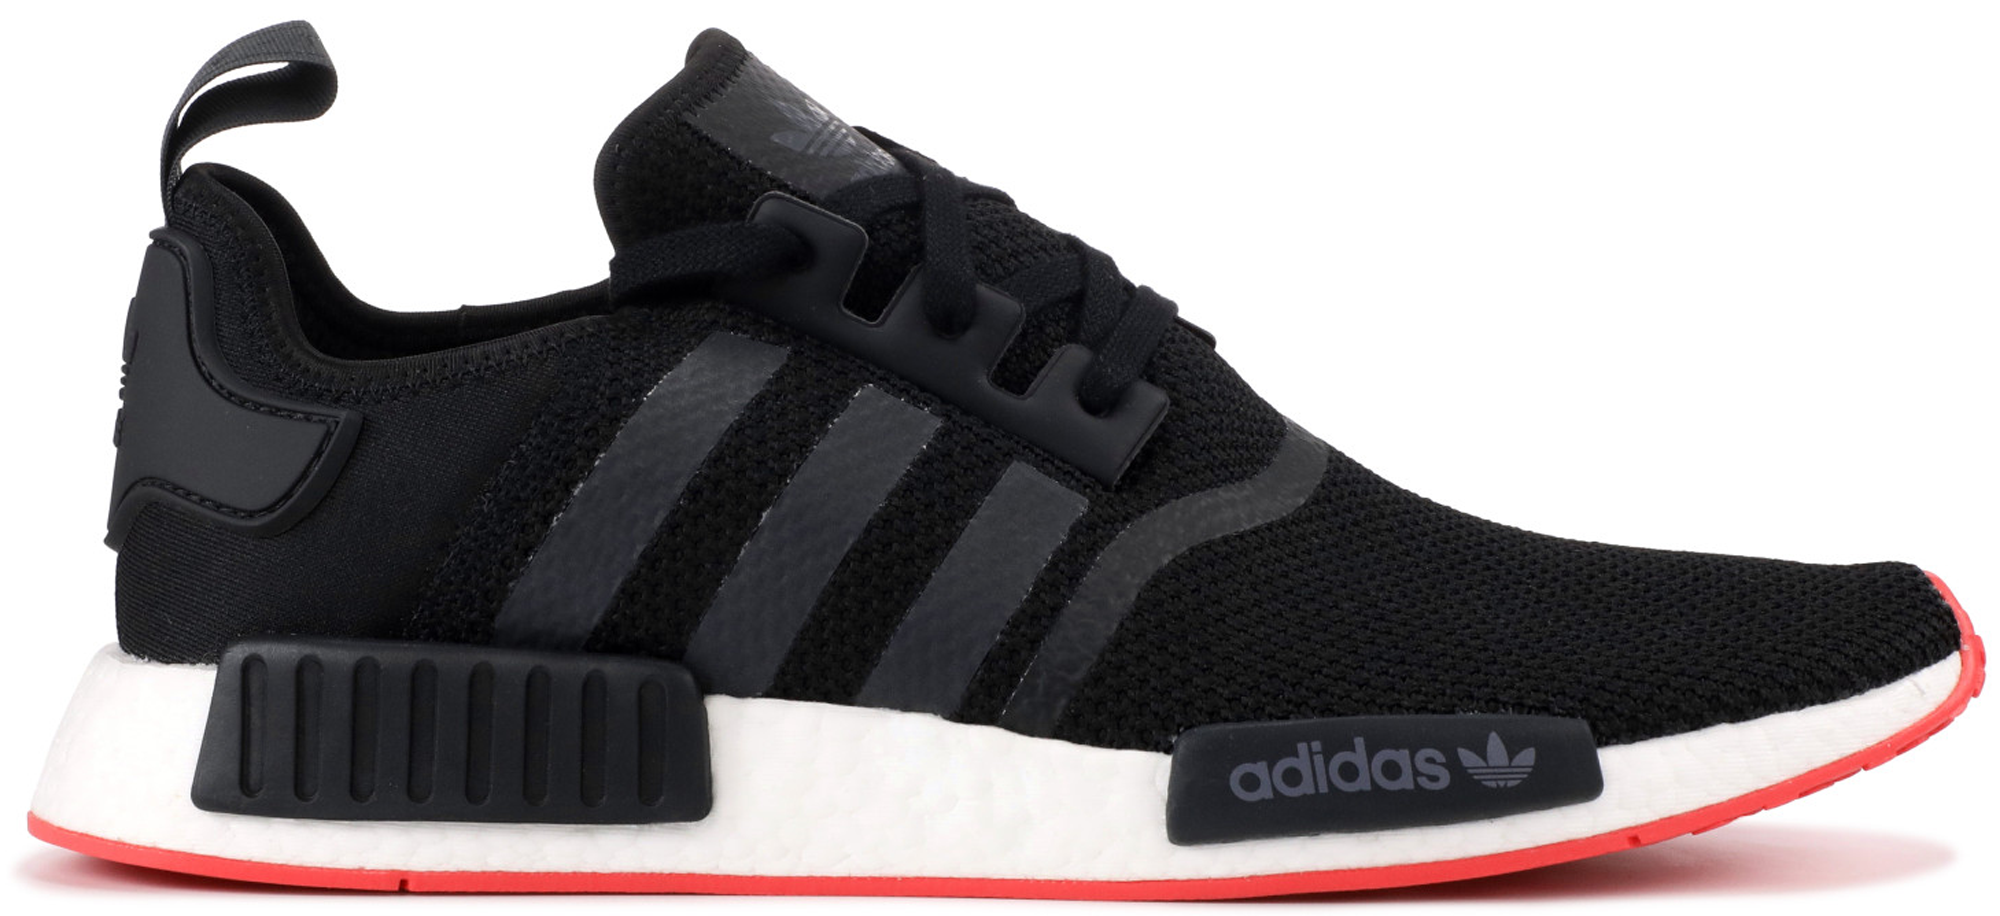 adidas NMD R1 Core Black Trace Scarlet